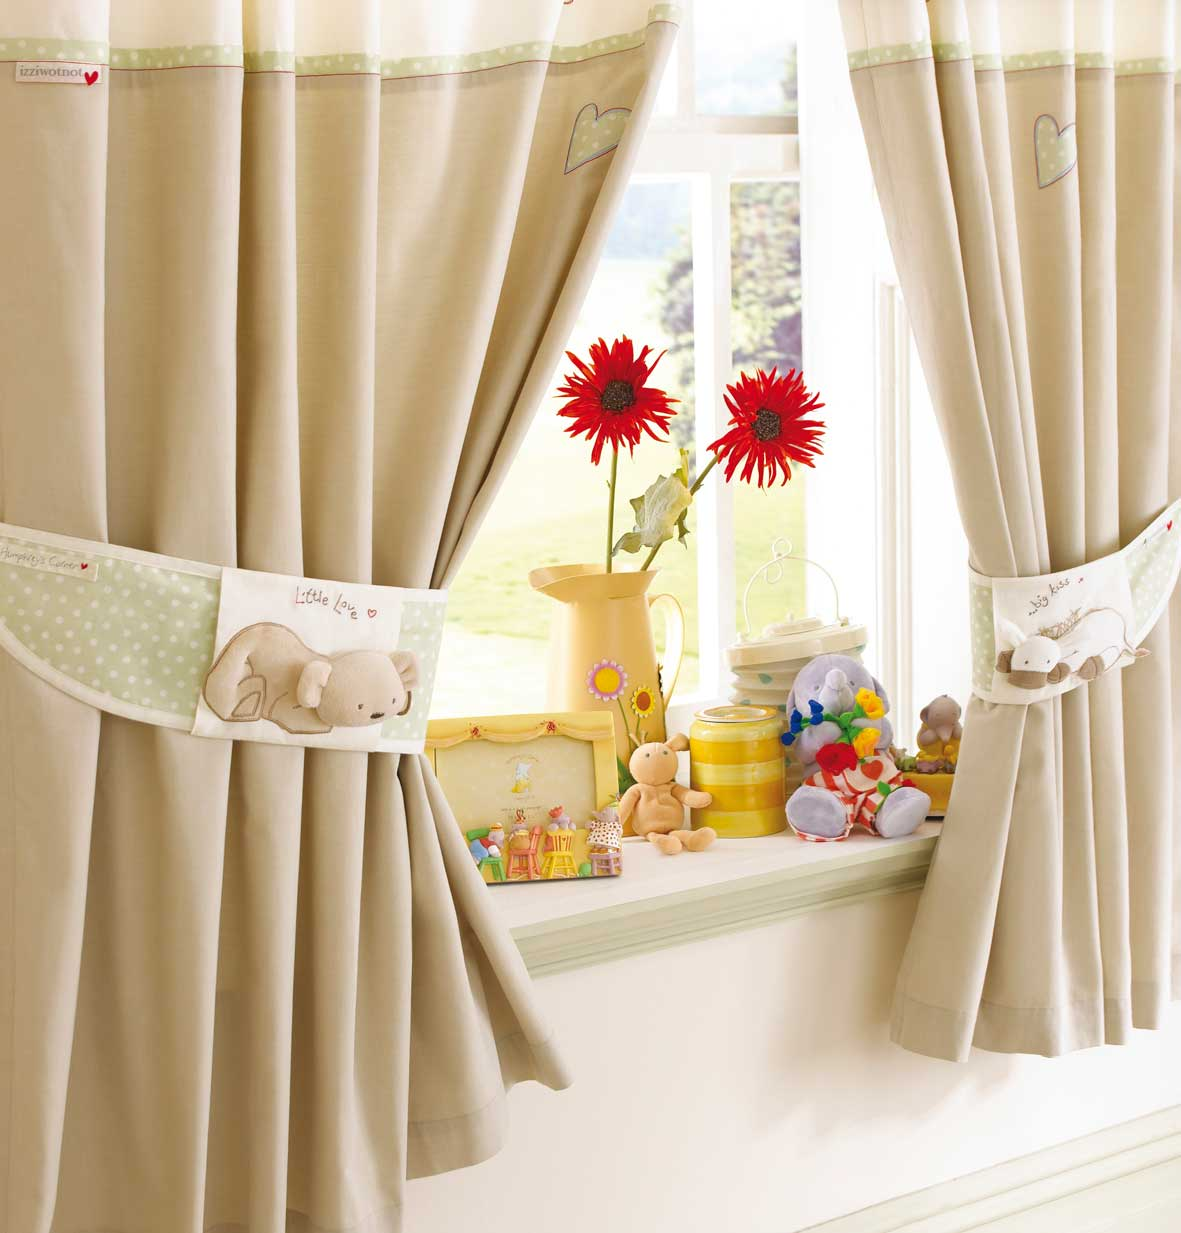 Curtains designs ideas modern home dsgn for Designs of kitchen curtains